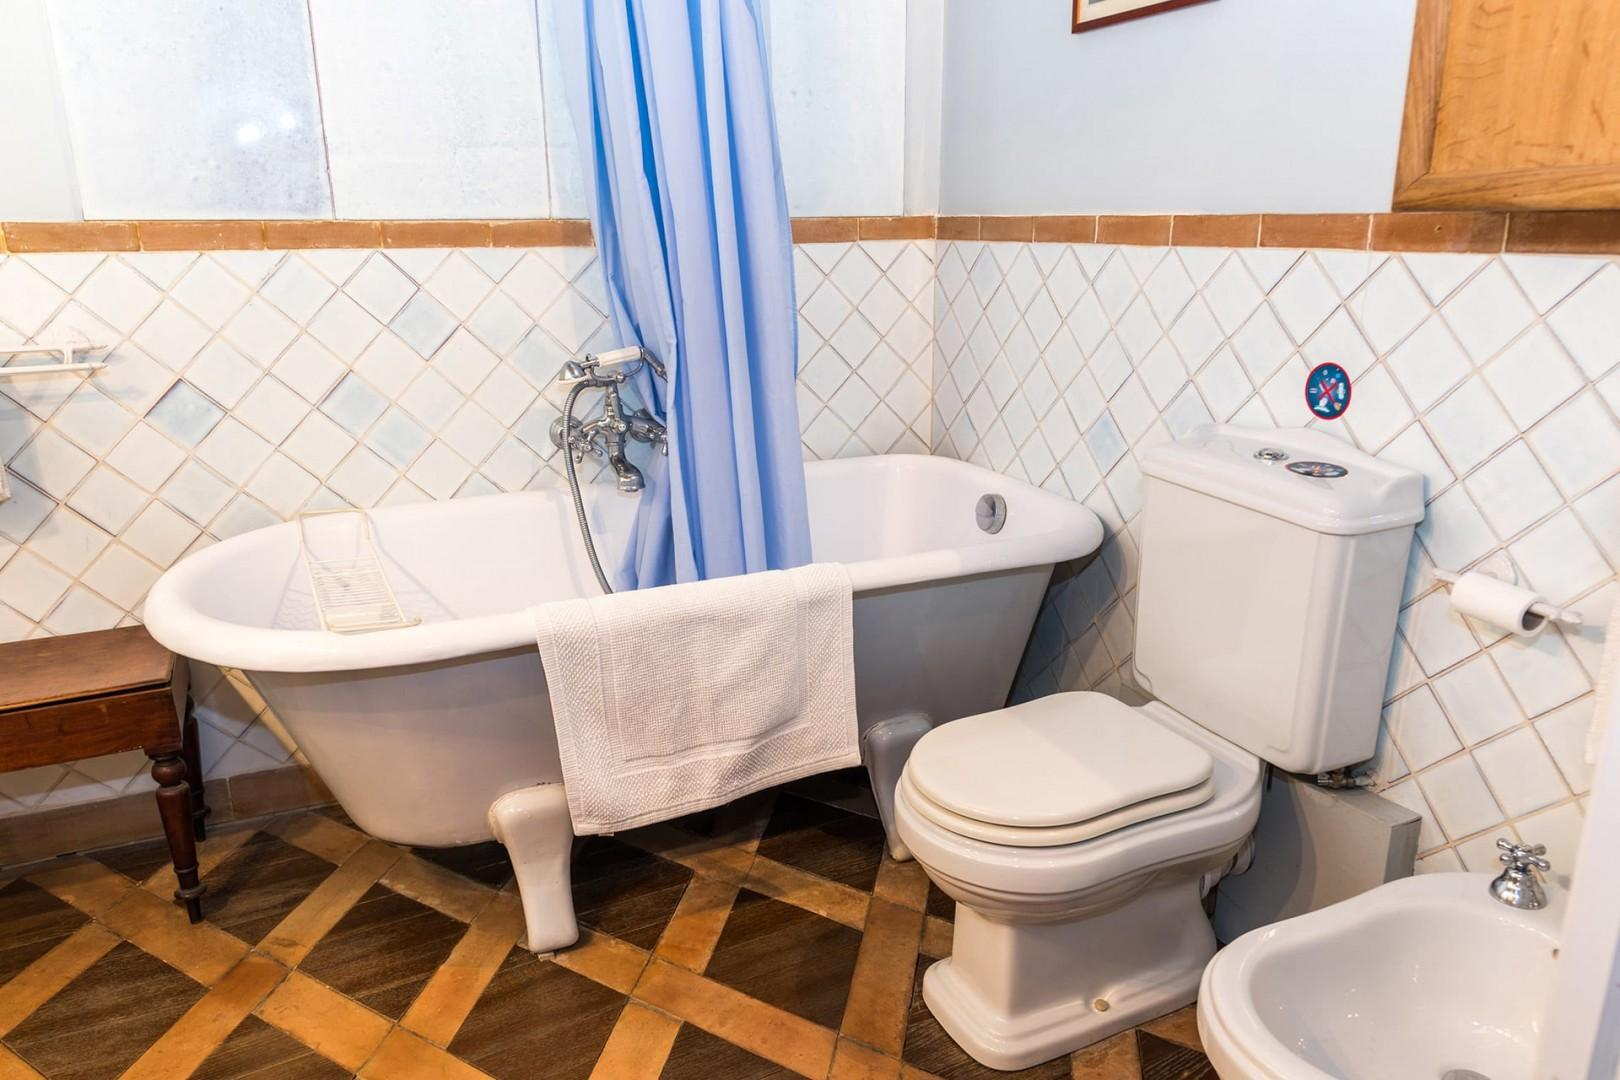 The bathroom has a bathtub fitted with a handheld showerhead, toilet and bidet.